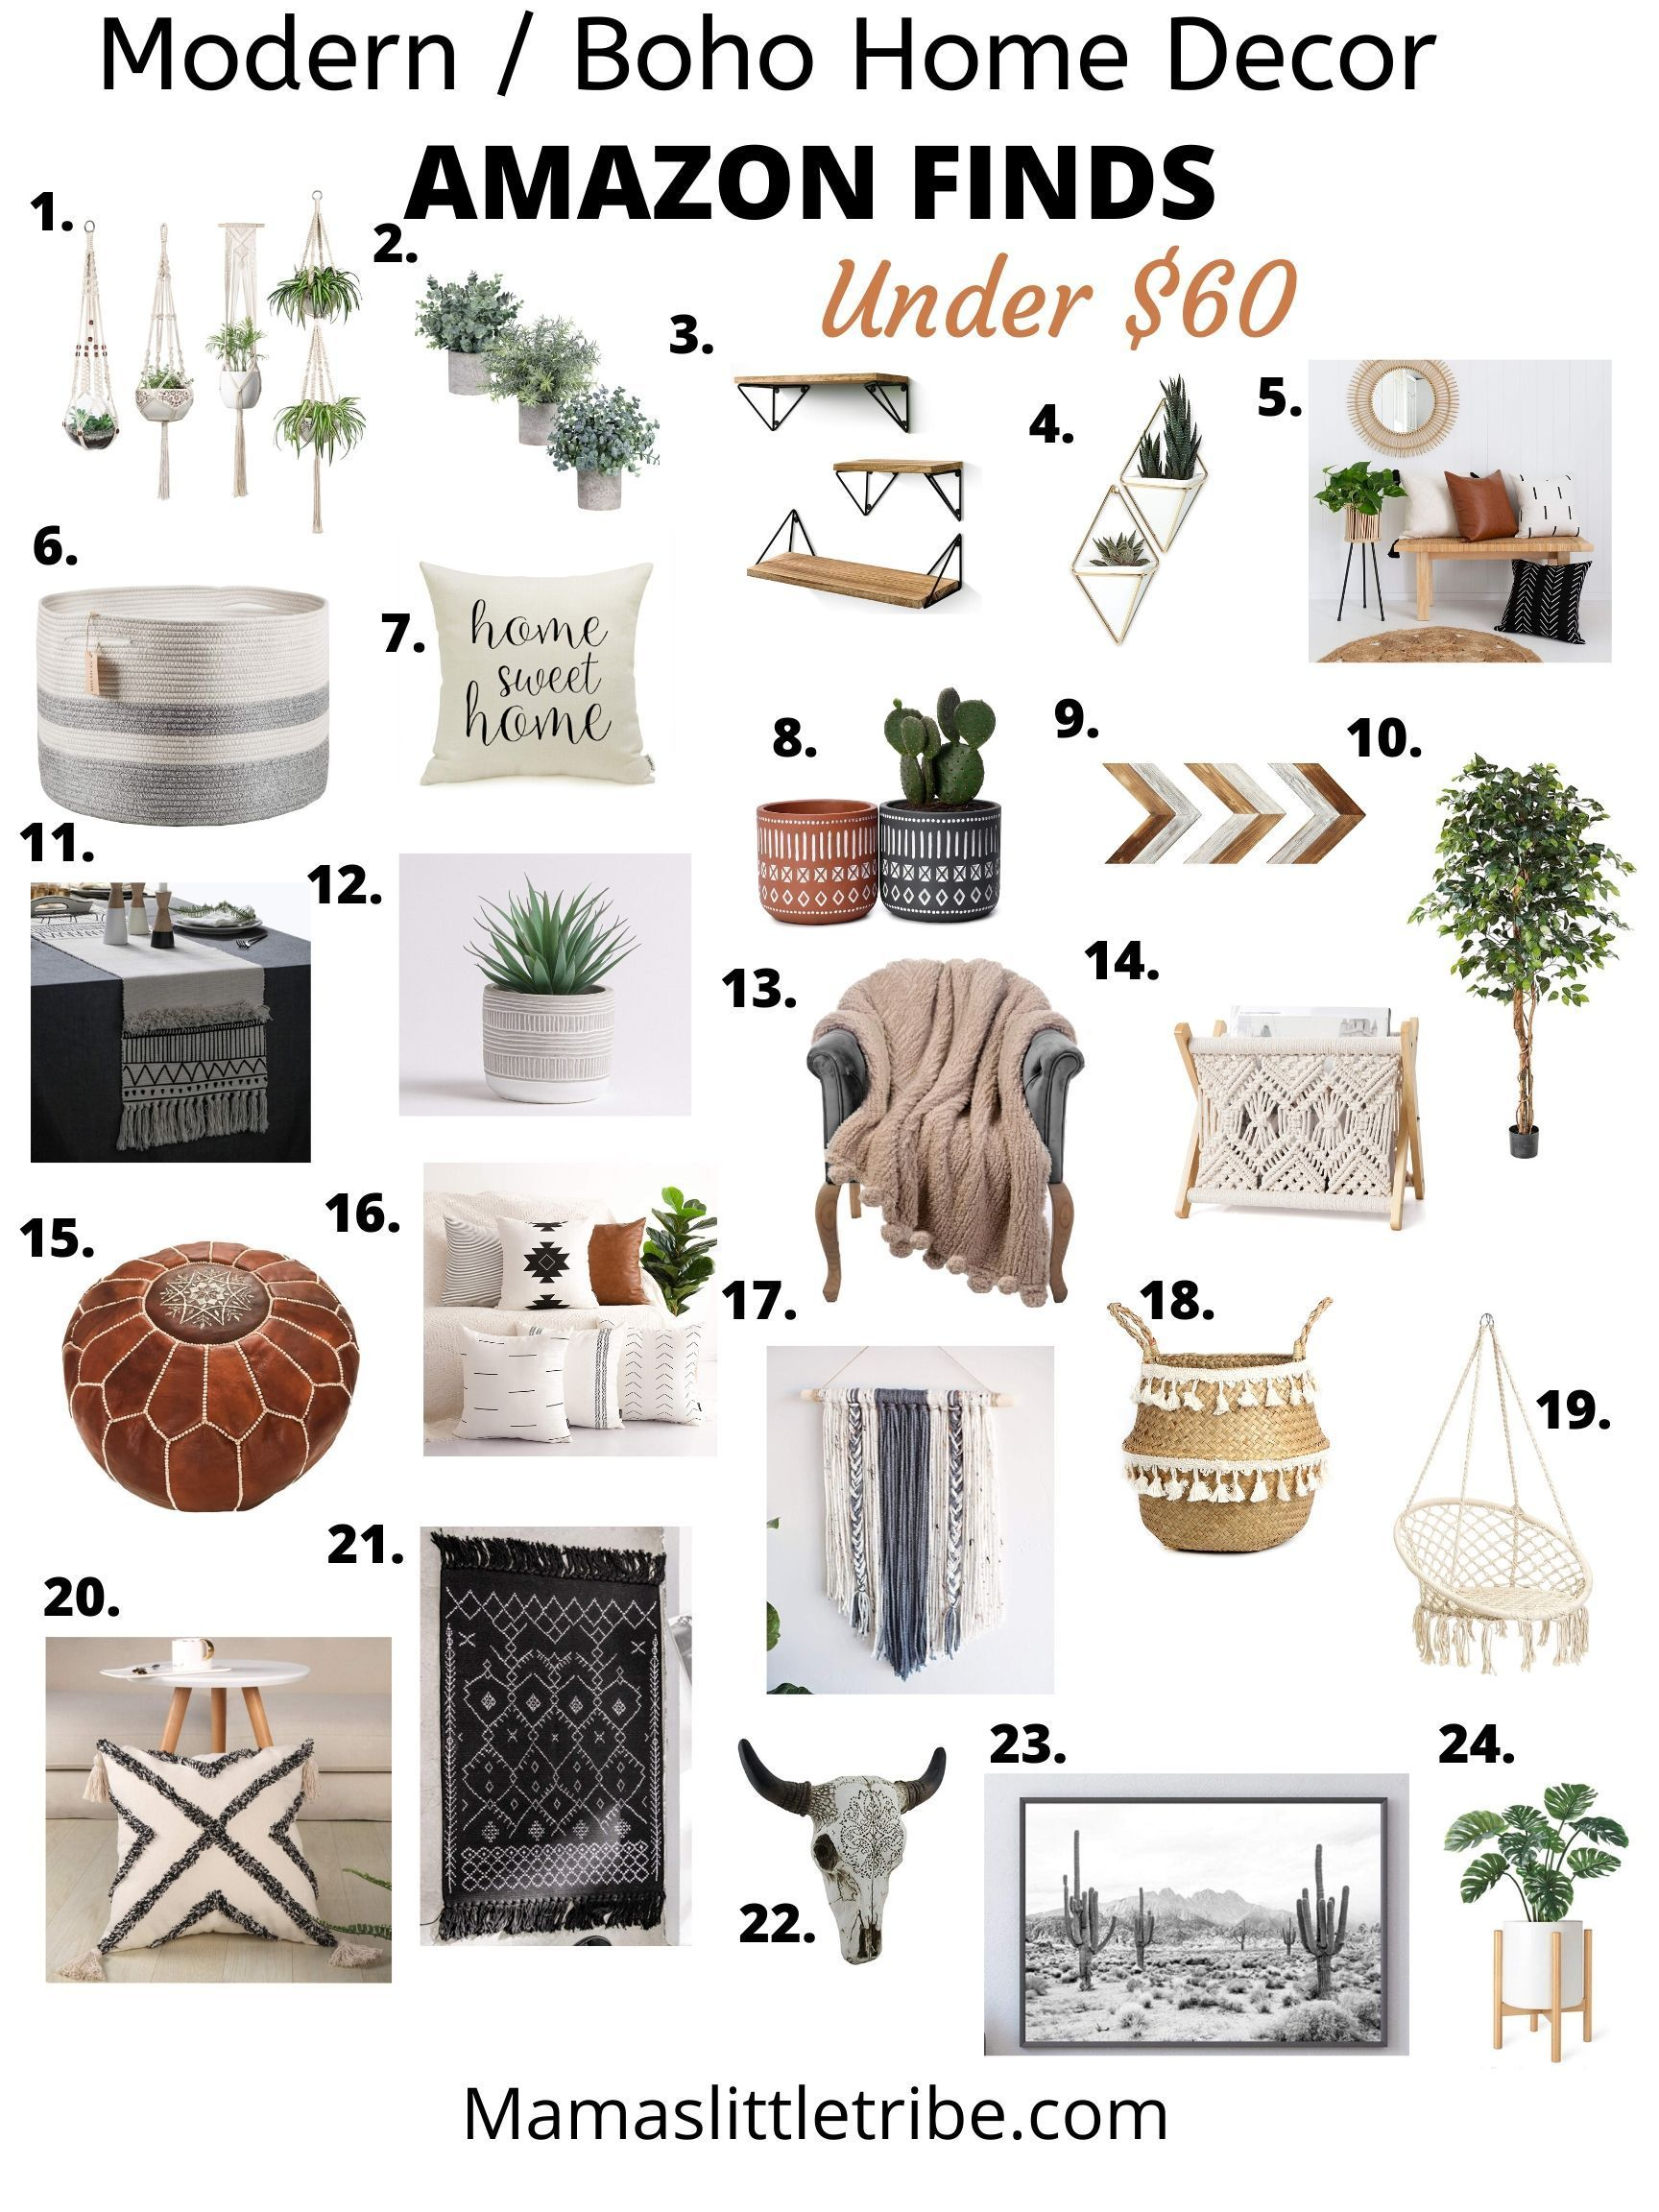 Affordable Amazon Home Decor Must Haves! Under $60 - Looking for affordable Farmhouse, Modern or boho home decor I've got you covered with my amazon fa -